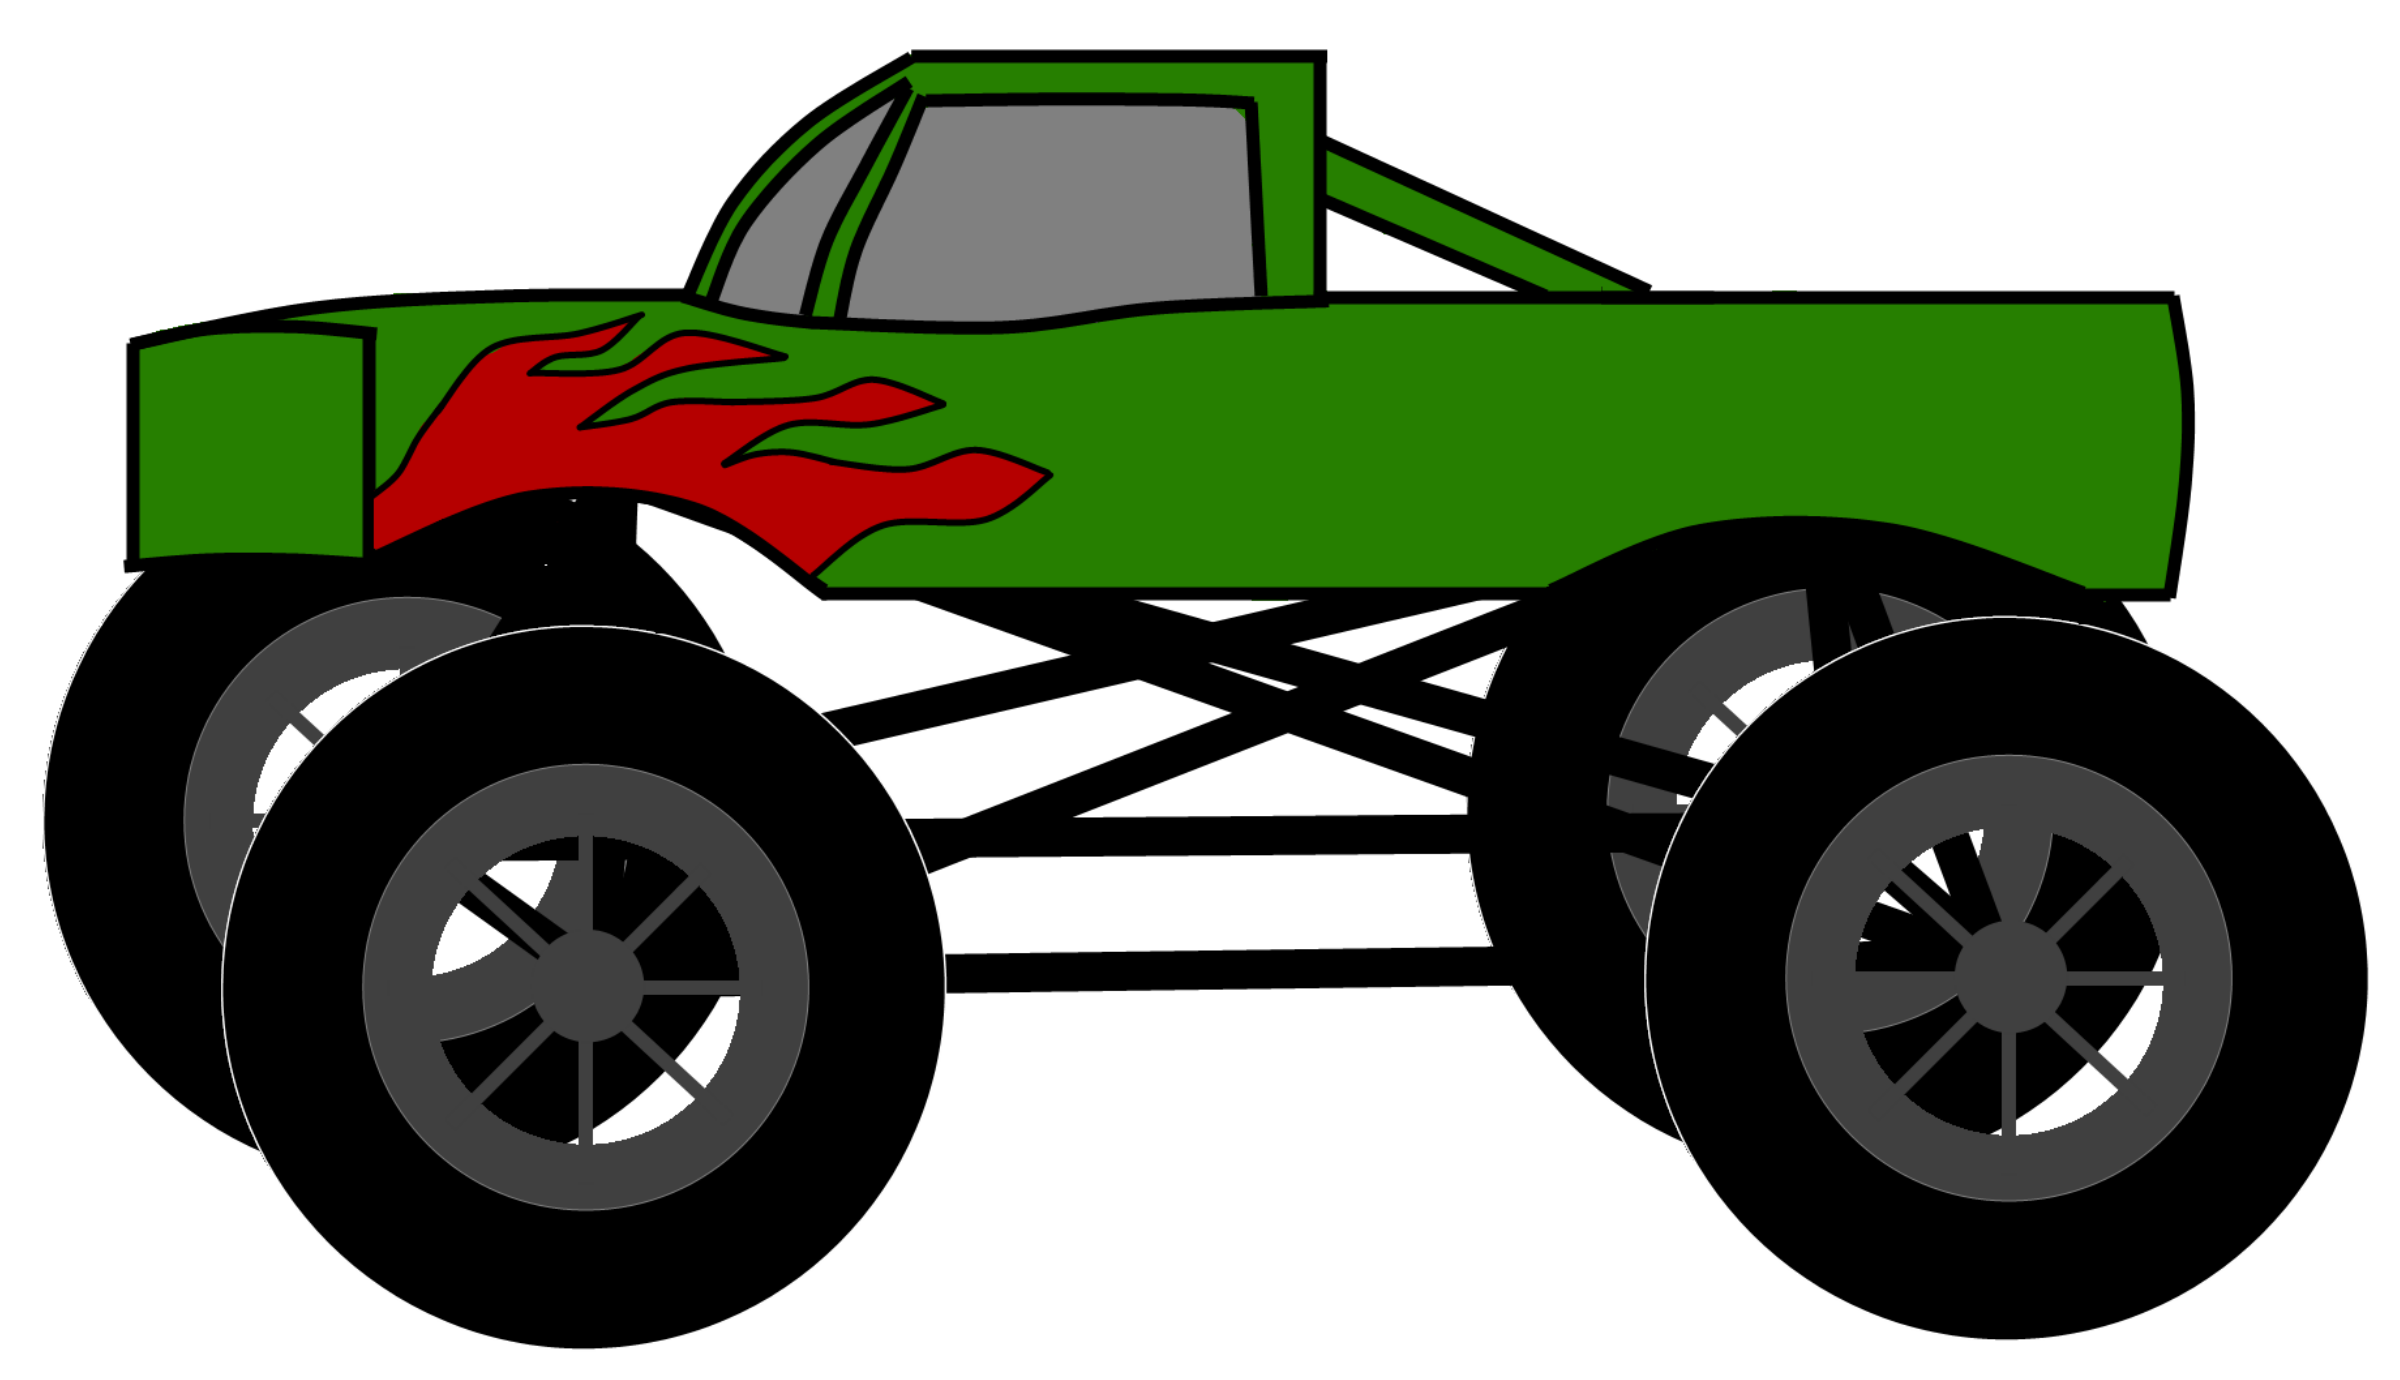 Truck clipart monster truck Happy%20monster%20clipart Truck Clipart Black And